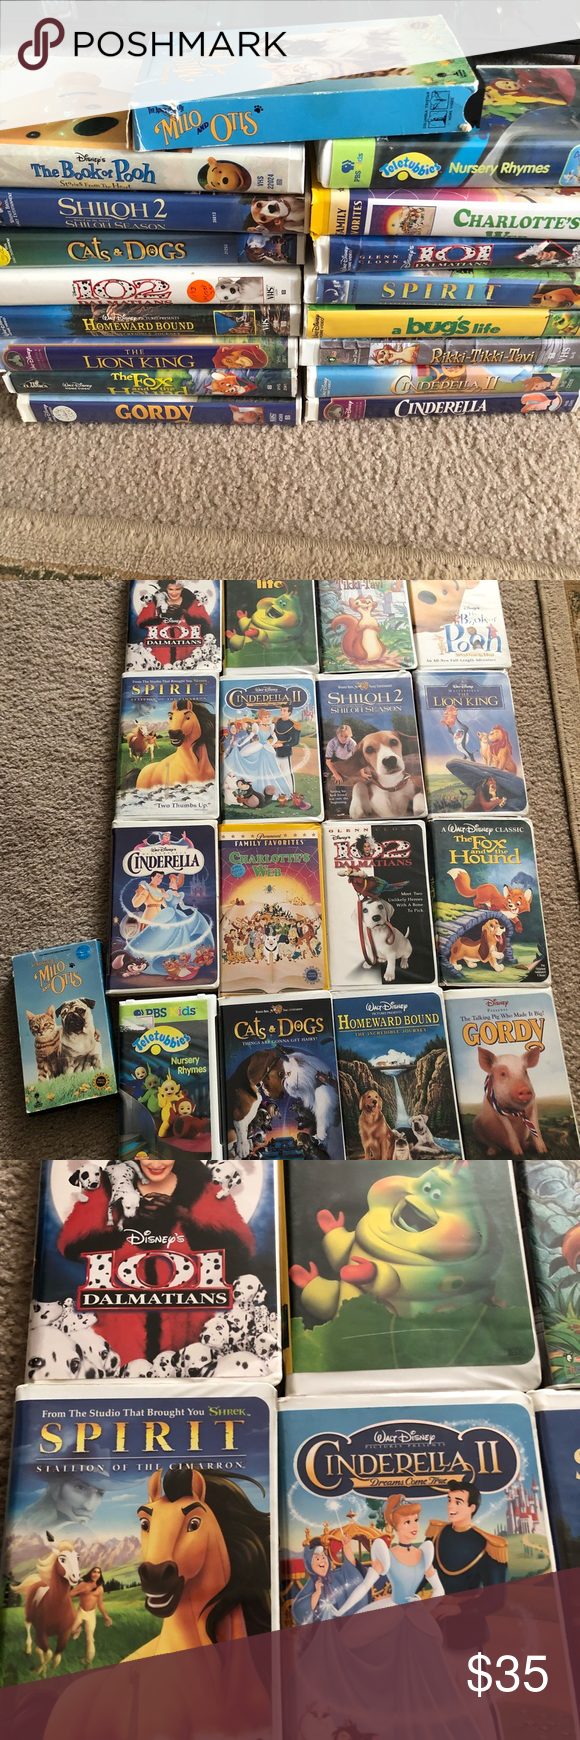 Huge vhs movie bundle The fox and the hound, Vhs movie